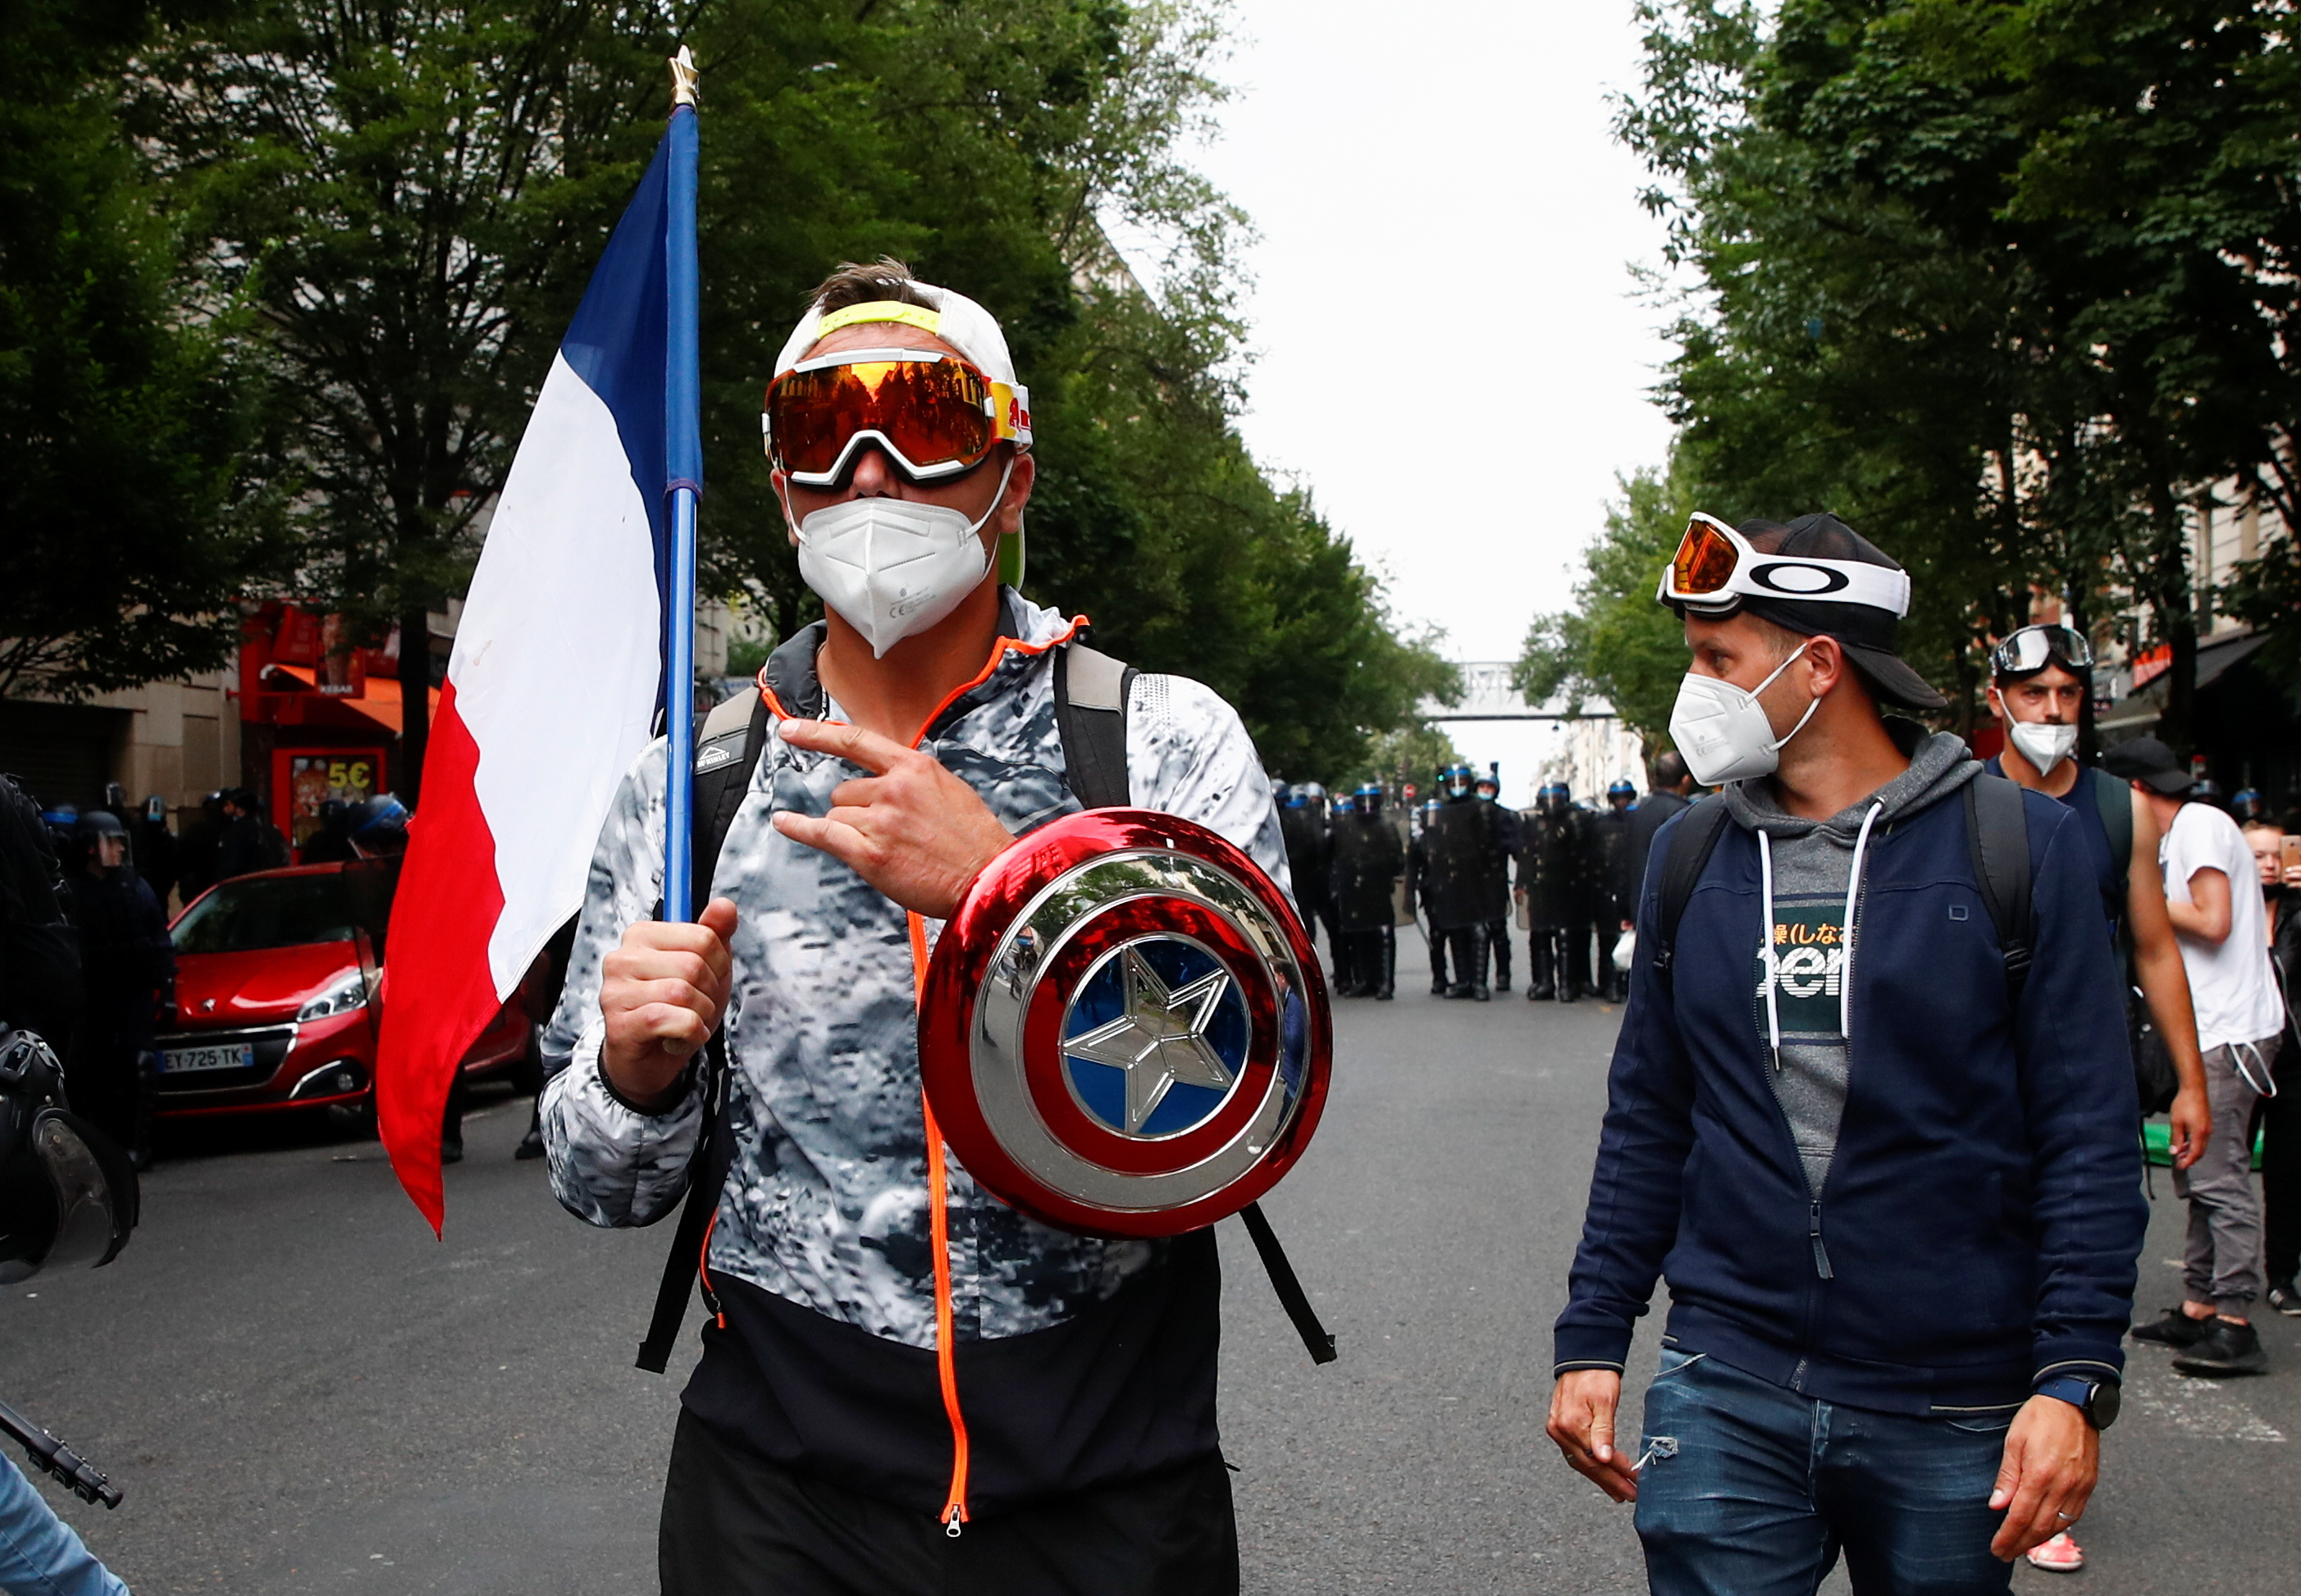 Demonstrators take part in a protest against the new measures announced by French President Emmanuel Macron to fight the coronavirus disease (COVID-19) outbreak, in Paris, France, July 14, 2021. REUTERS/Gonzalo Fuentes